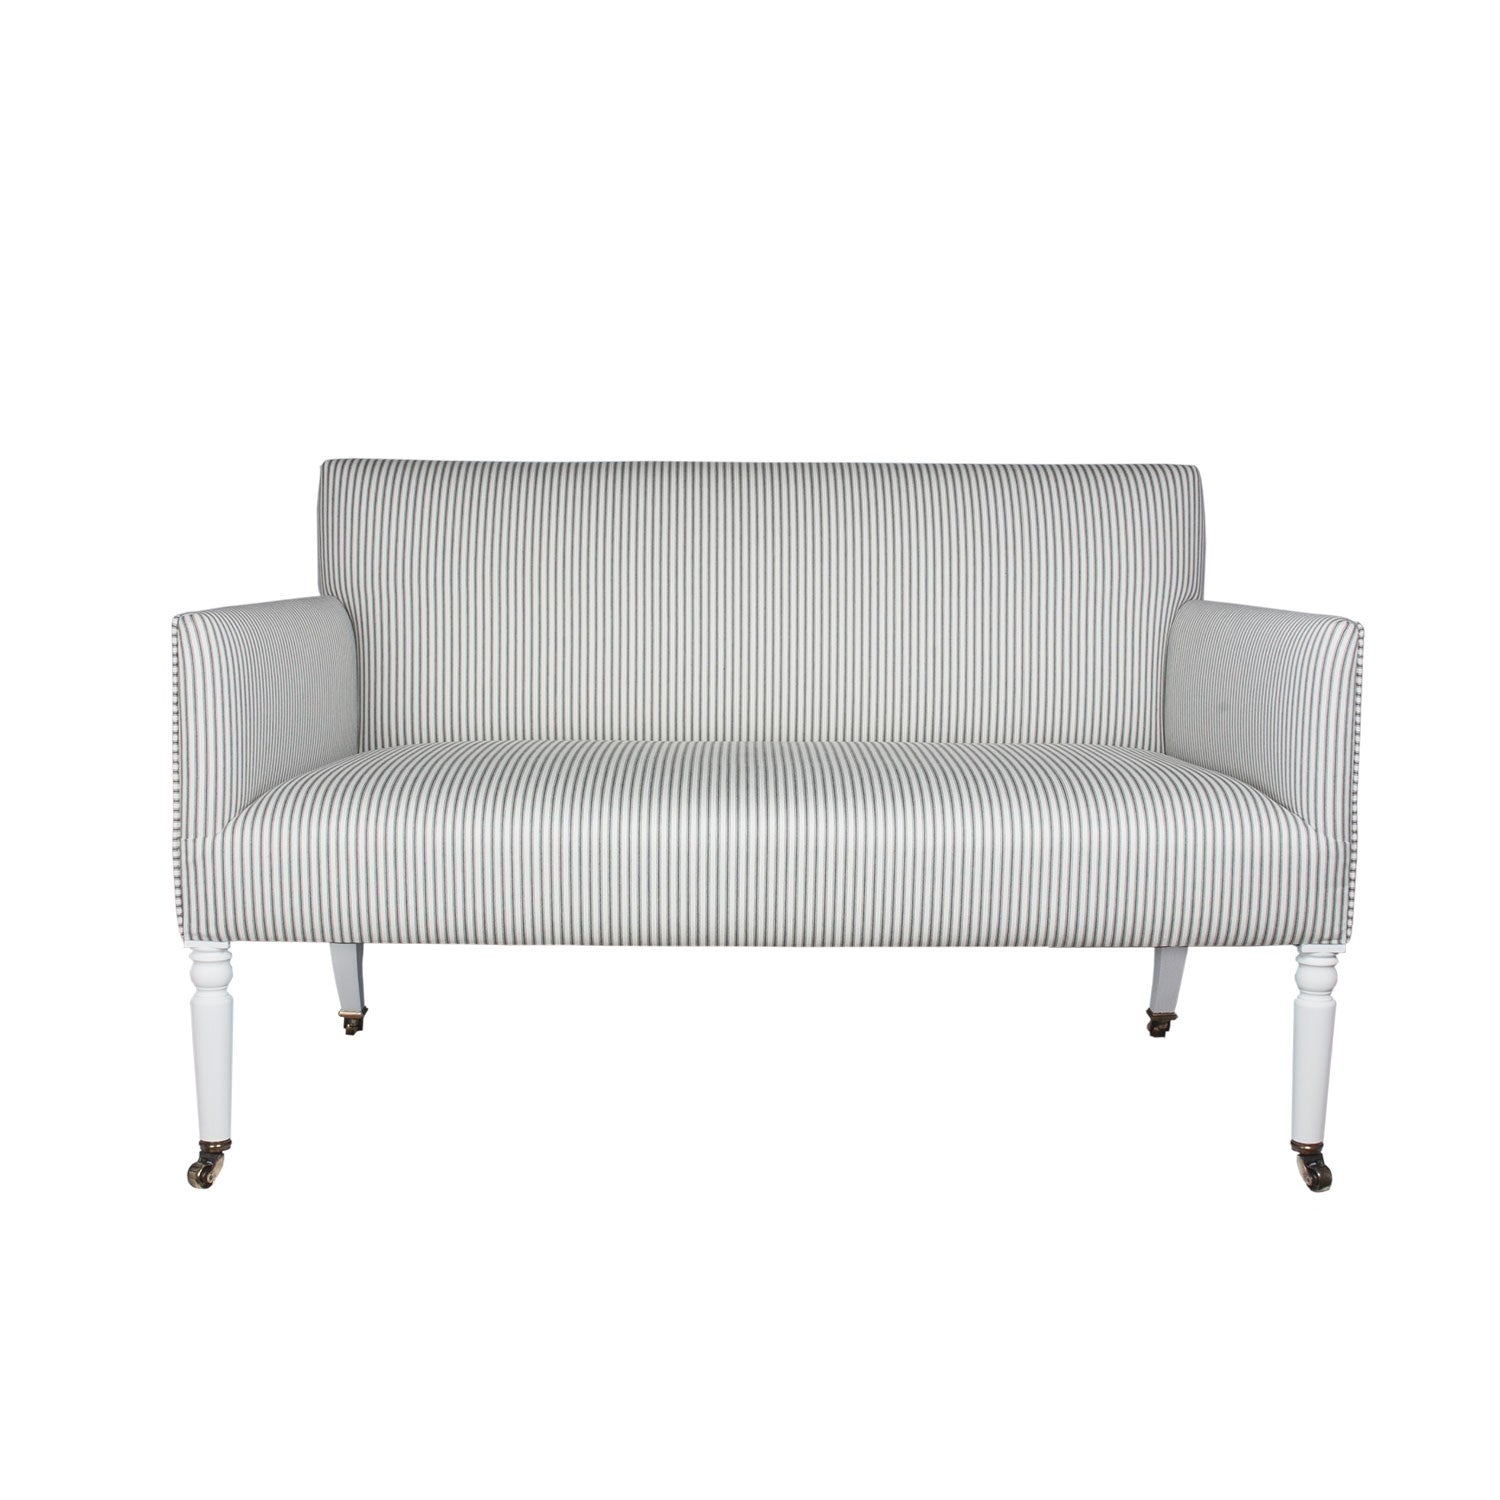 P&H Bloomsbury Sofa - 2 seater - Made to Order